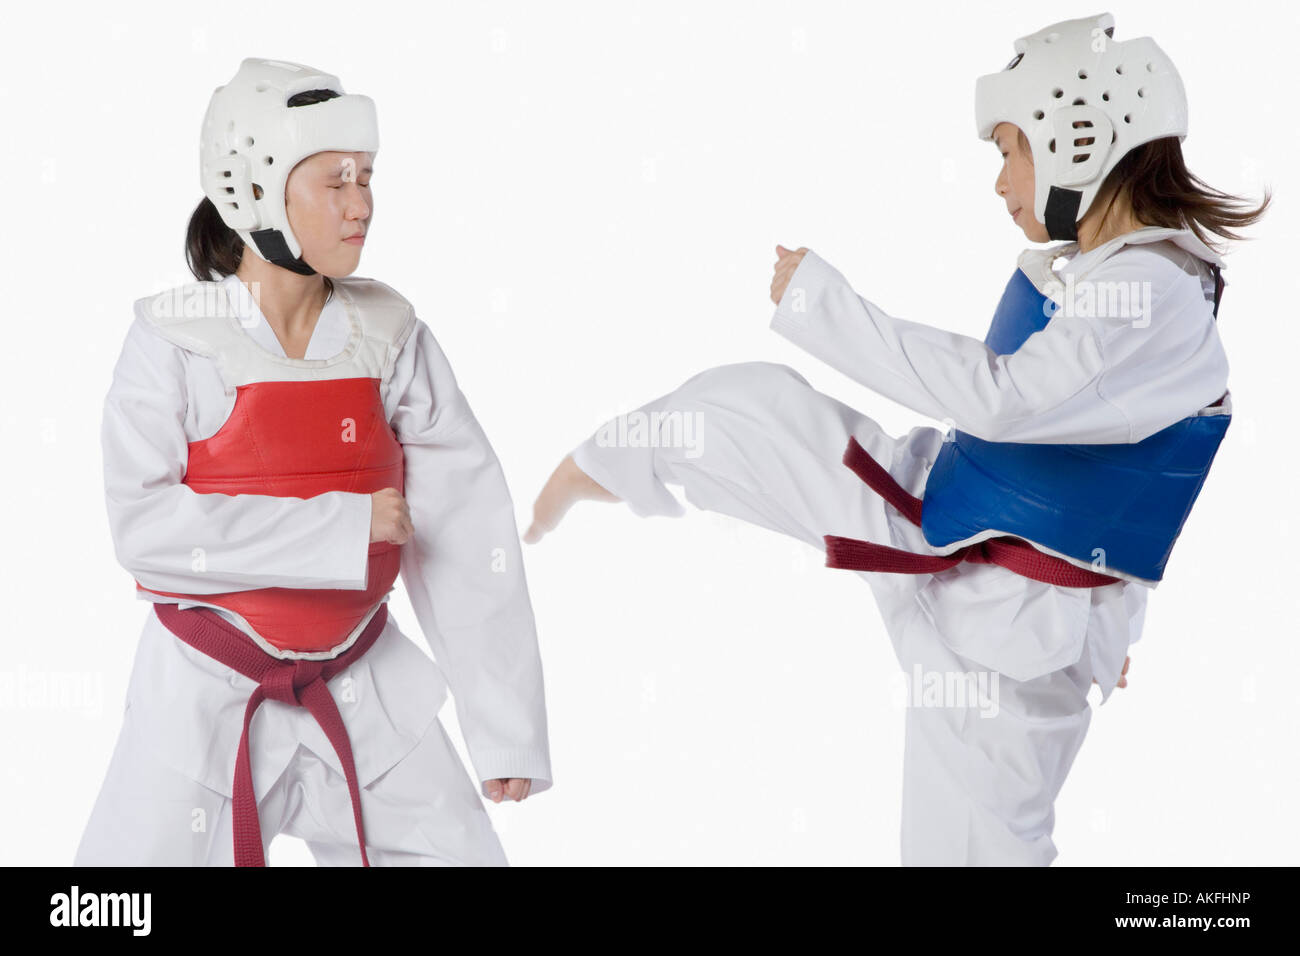 Two taekwondo players fighting - Stock Image